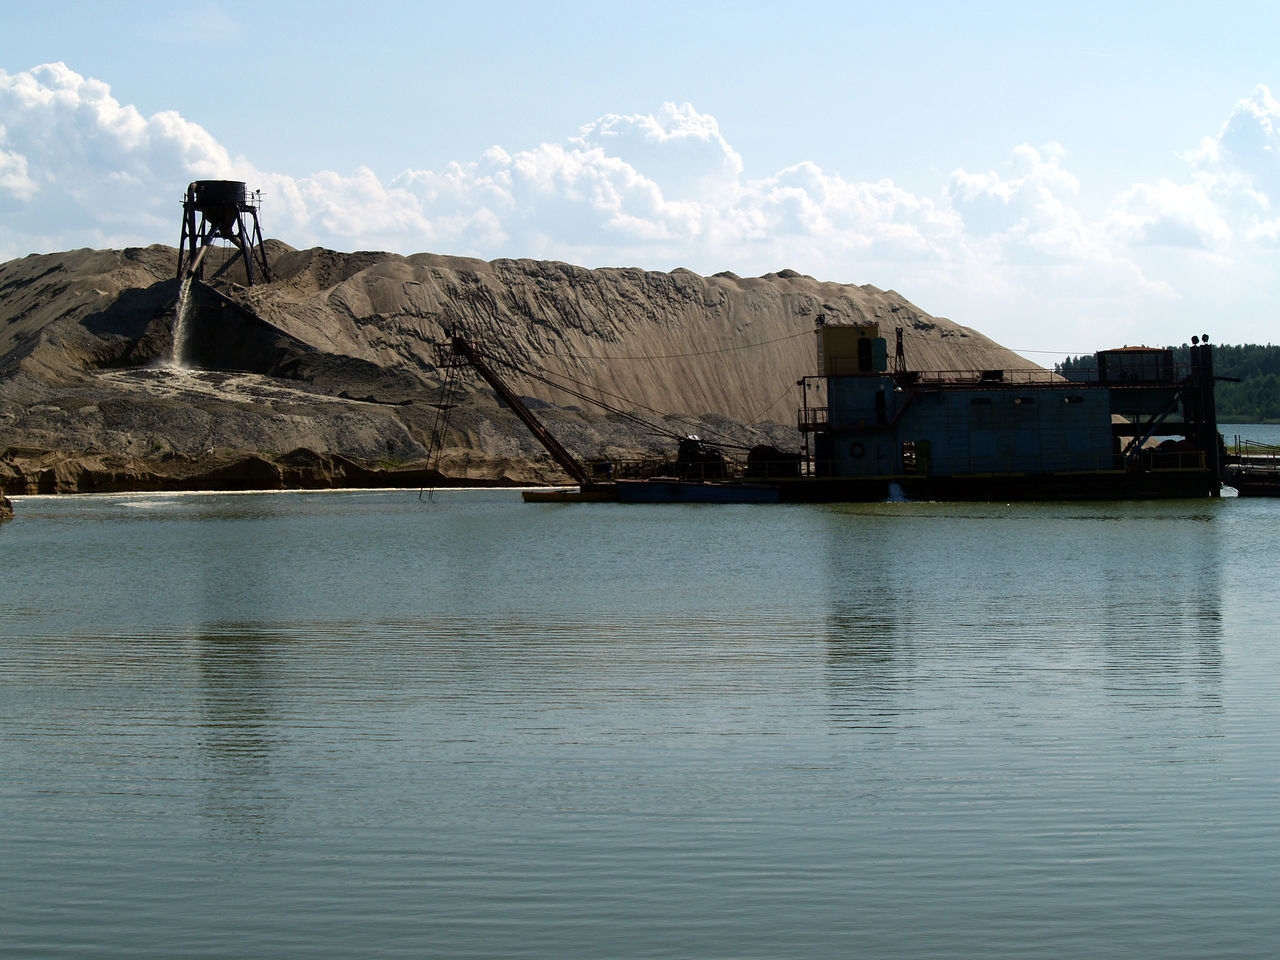 Beauty In Nature Day Mining Industry Nature No People Outdoors River Sky Water